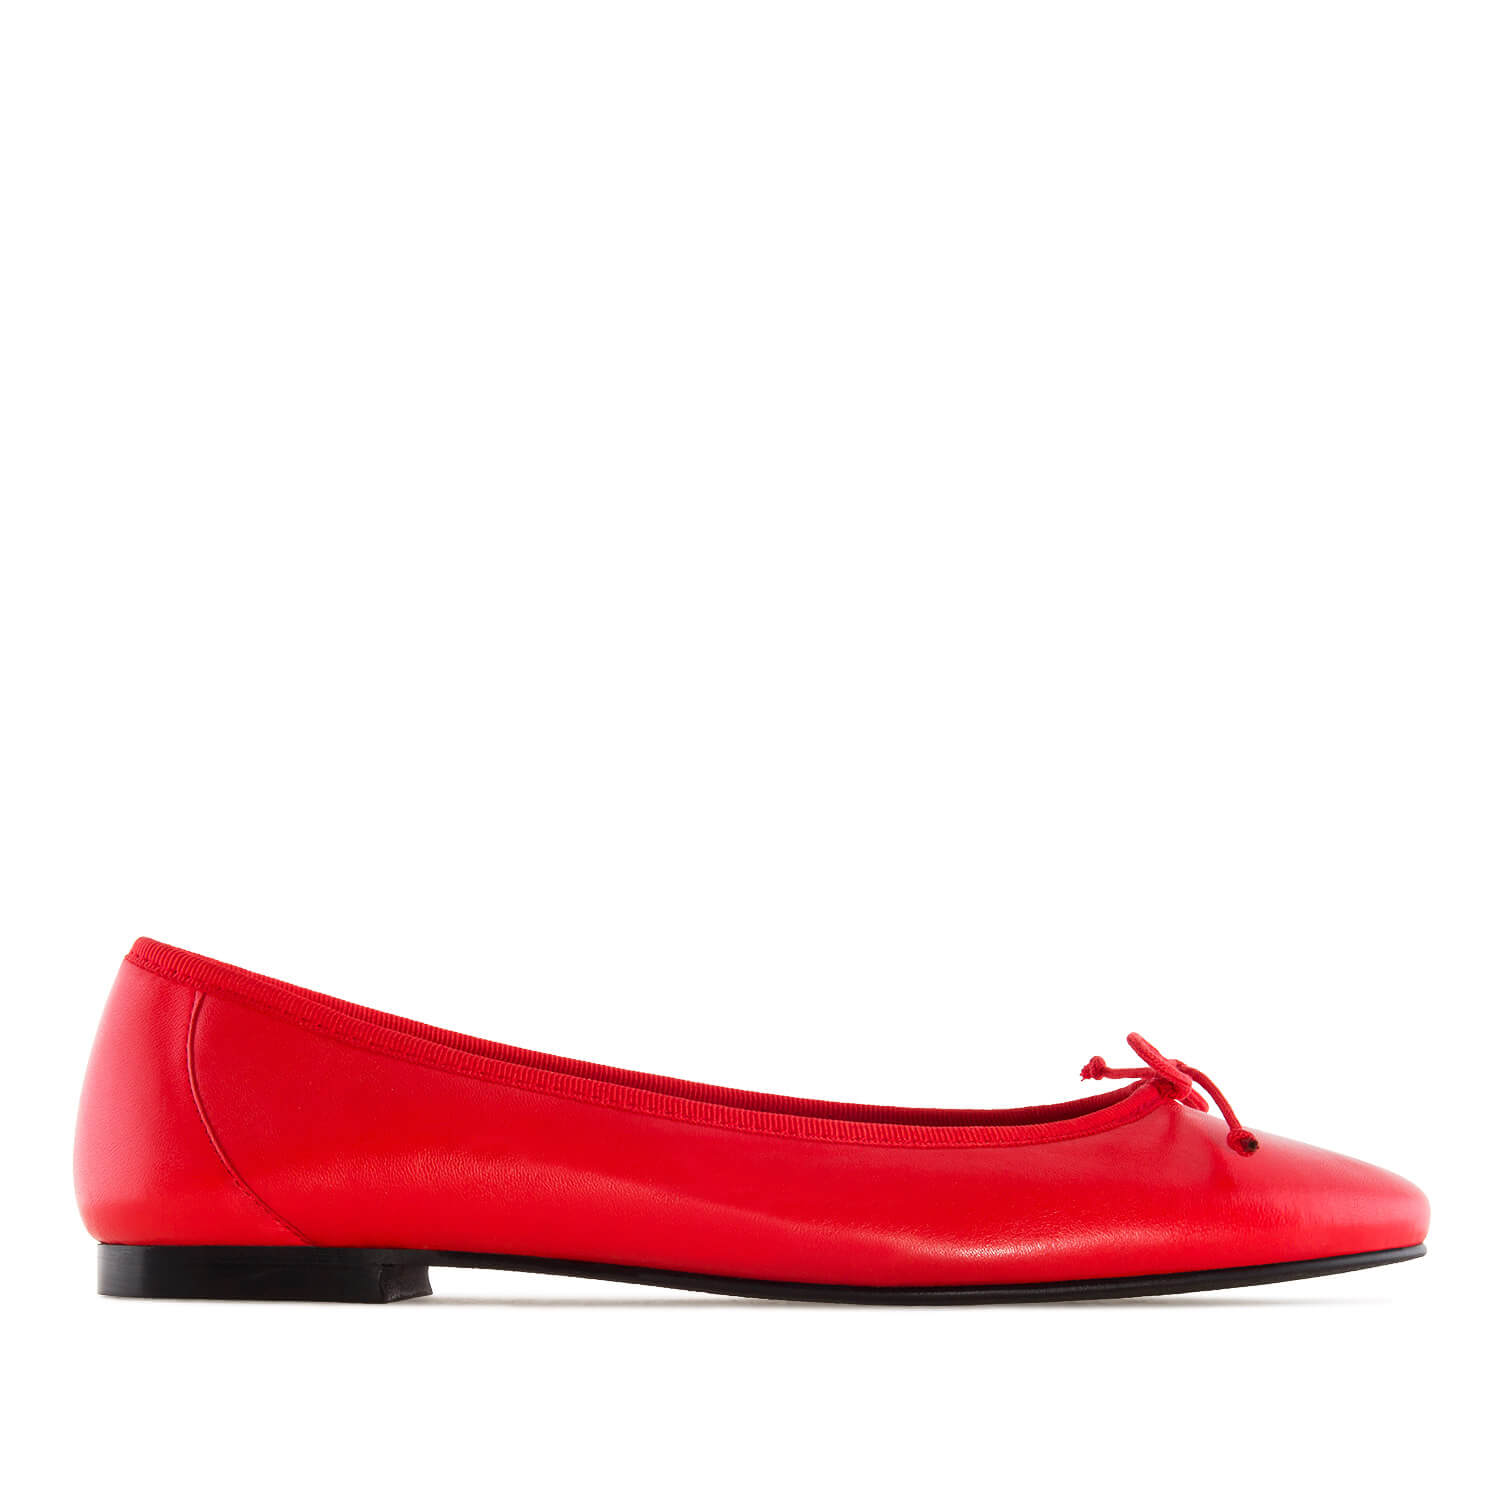 Ballet Flats in Red Leather